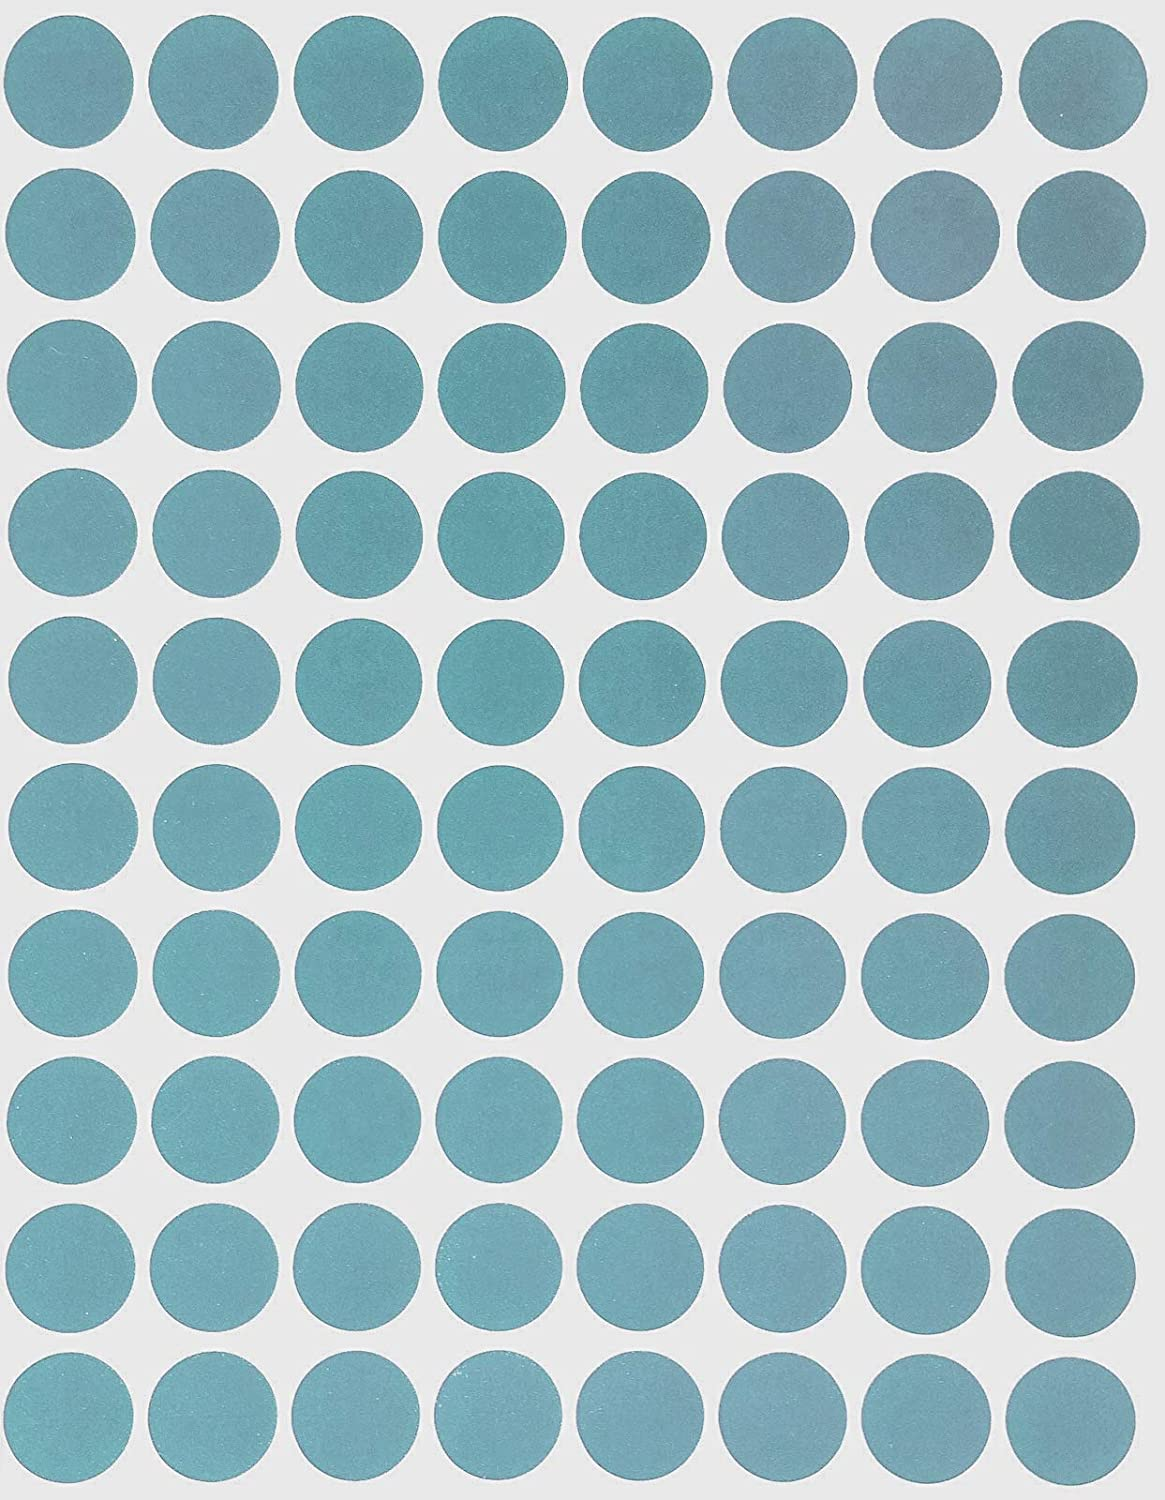 Dot Stickers Color Coding Labels 13mm Round 1200 Pack By Royal Green Half Inch Rounds Yellow Sticker